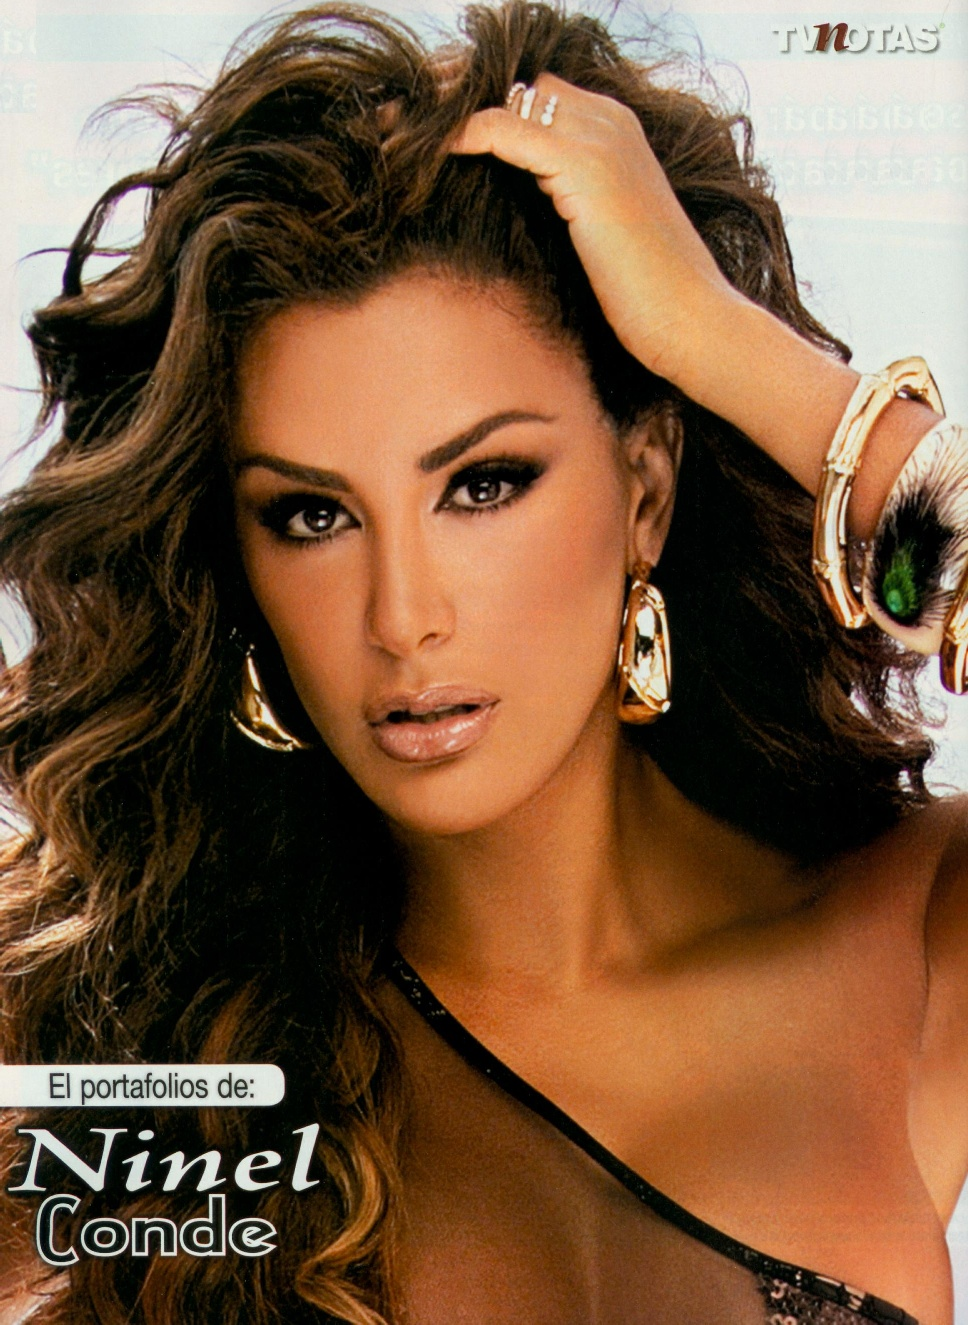 Ninel conde you porn pity